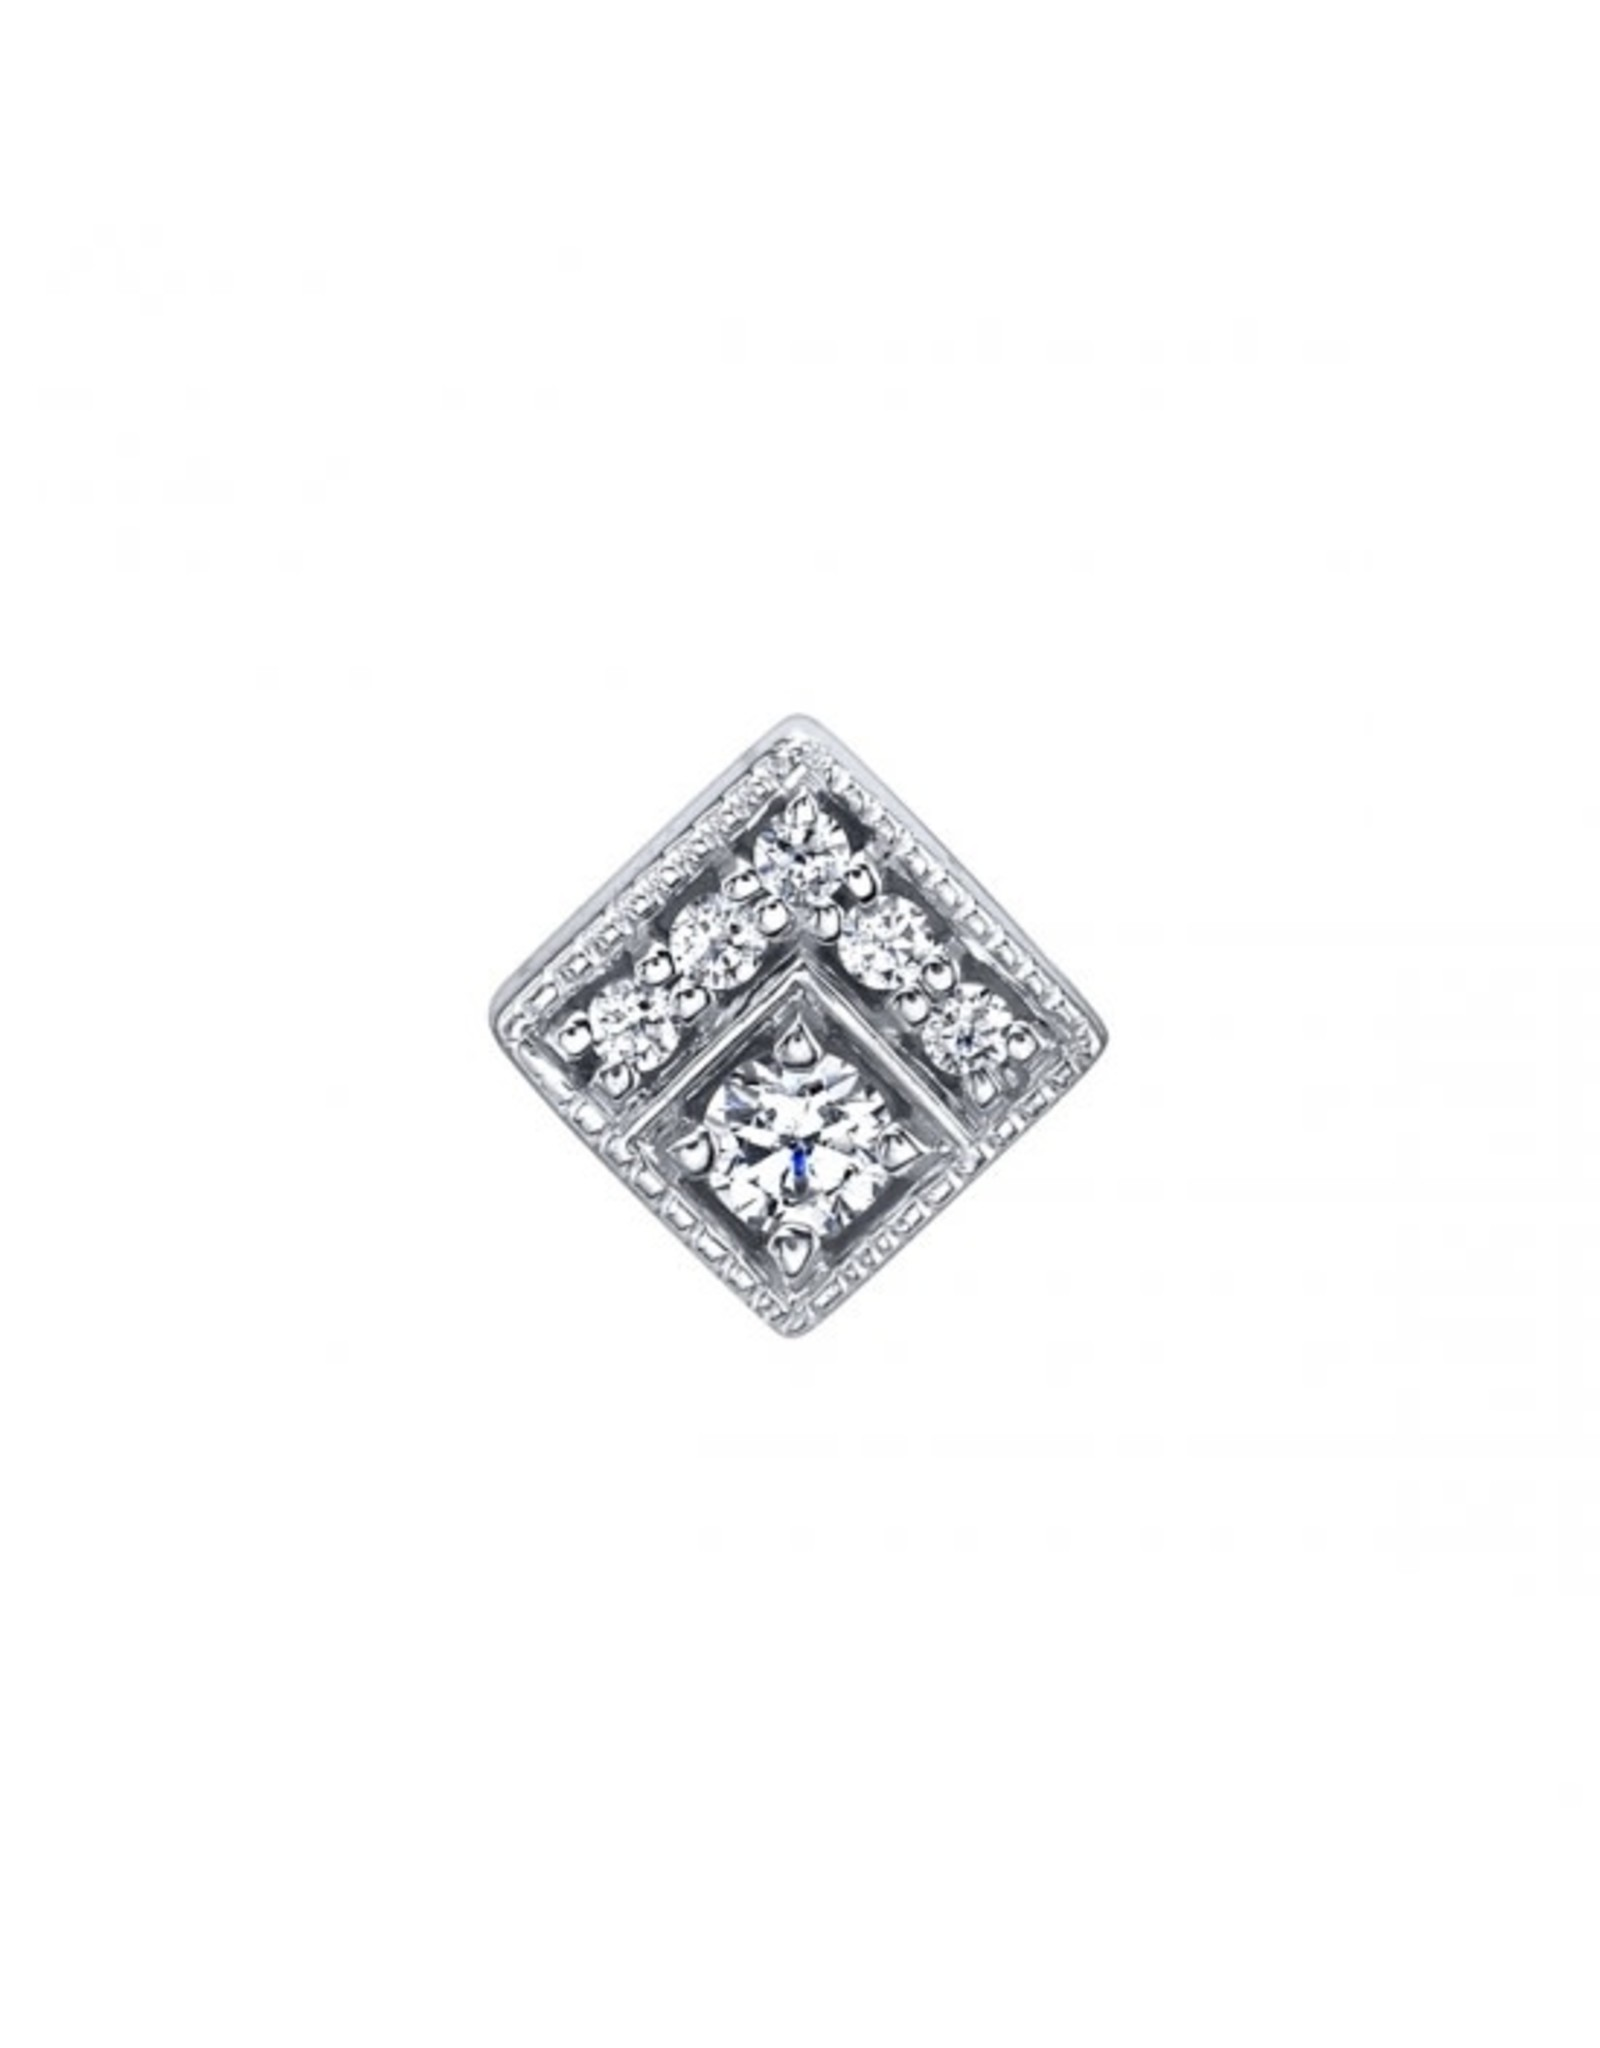 """BVLA BVLA white gold """"Endymion Square"""" threaded end with 5x 1.0 CZ & 2.0 CZ"""